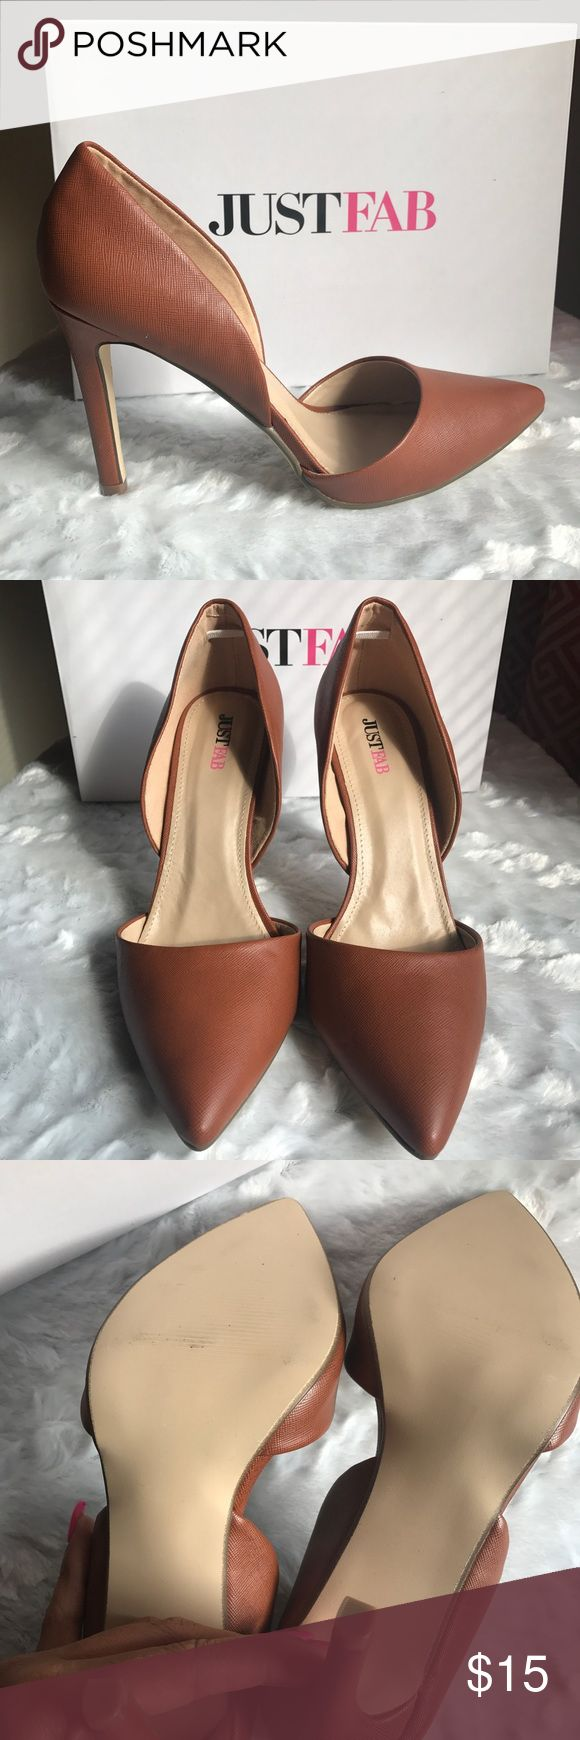 JUSTFAB Cognac Heels Great go to pump. Cognac color goes great with many outfits. Looks great with denim skinny jeans. Faux leather. 3.75 inch heel. JustFab Shoes Heels